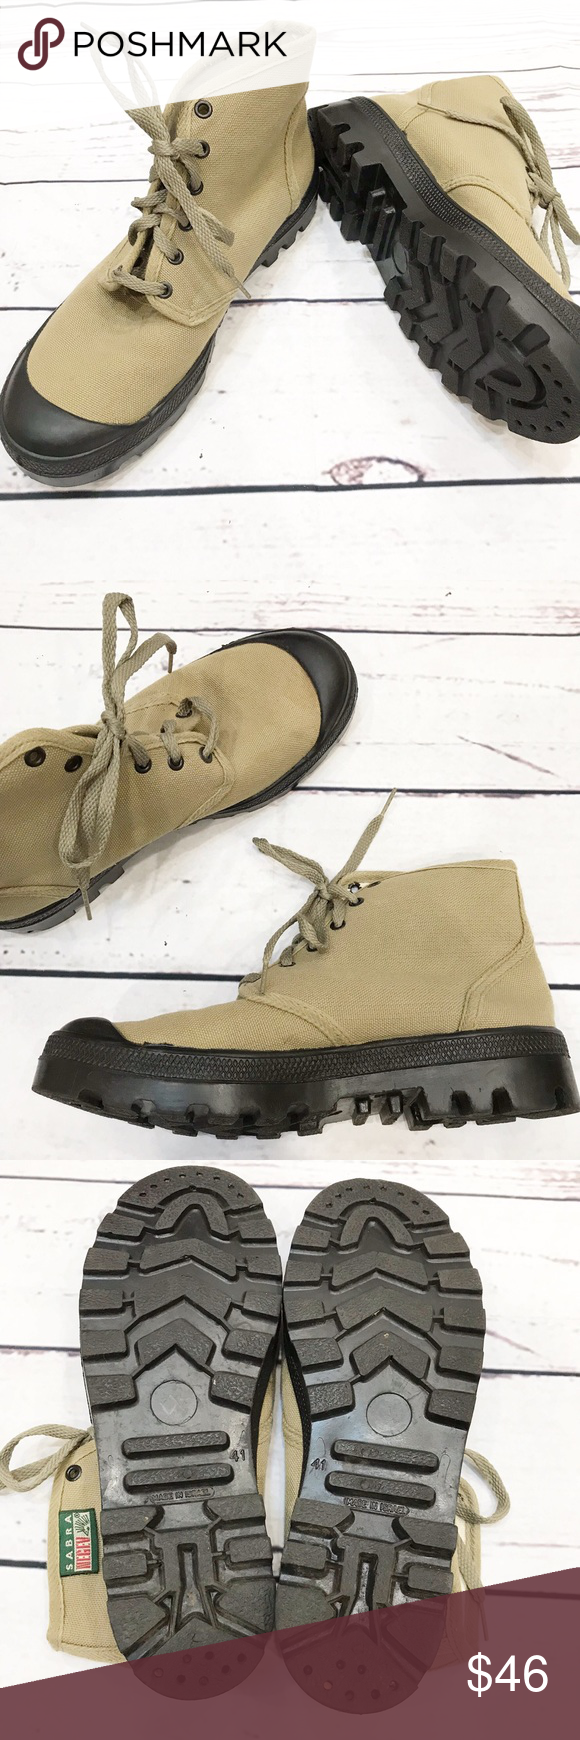 Sabra Negev Military Combat Canvas Boots 41 10 These Unisex Canvas